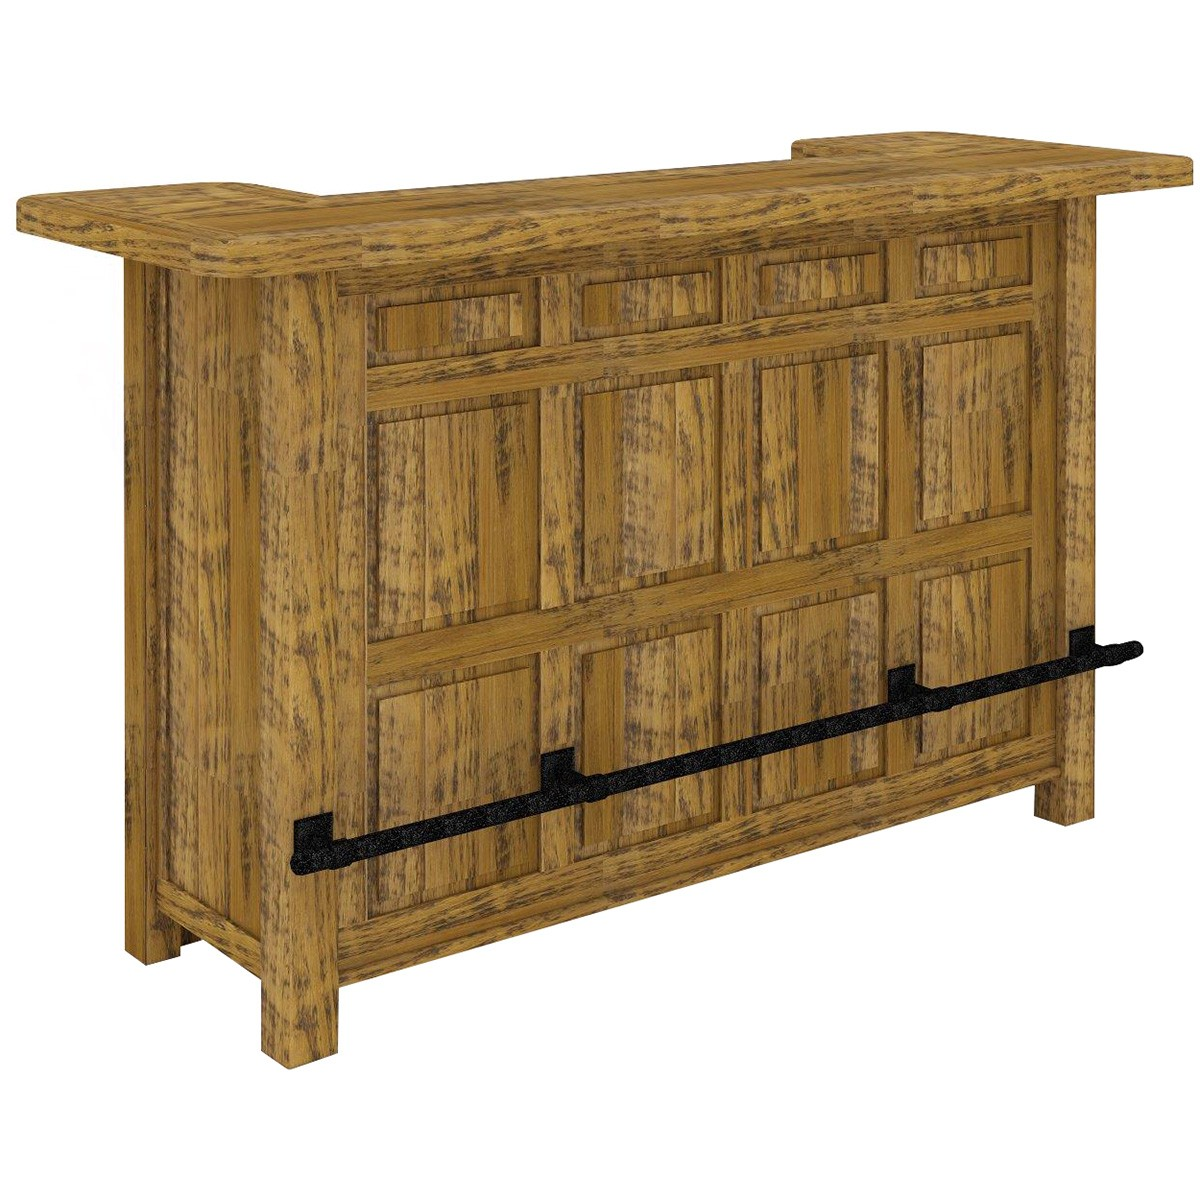 Serafin Rustic Pine Timber Bar Counter, 192cm